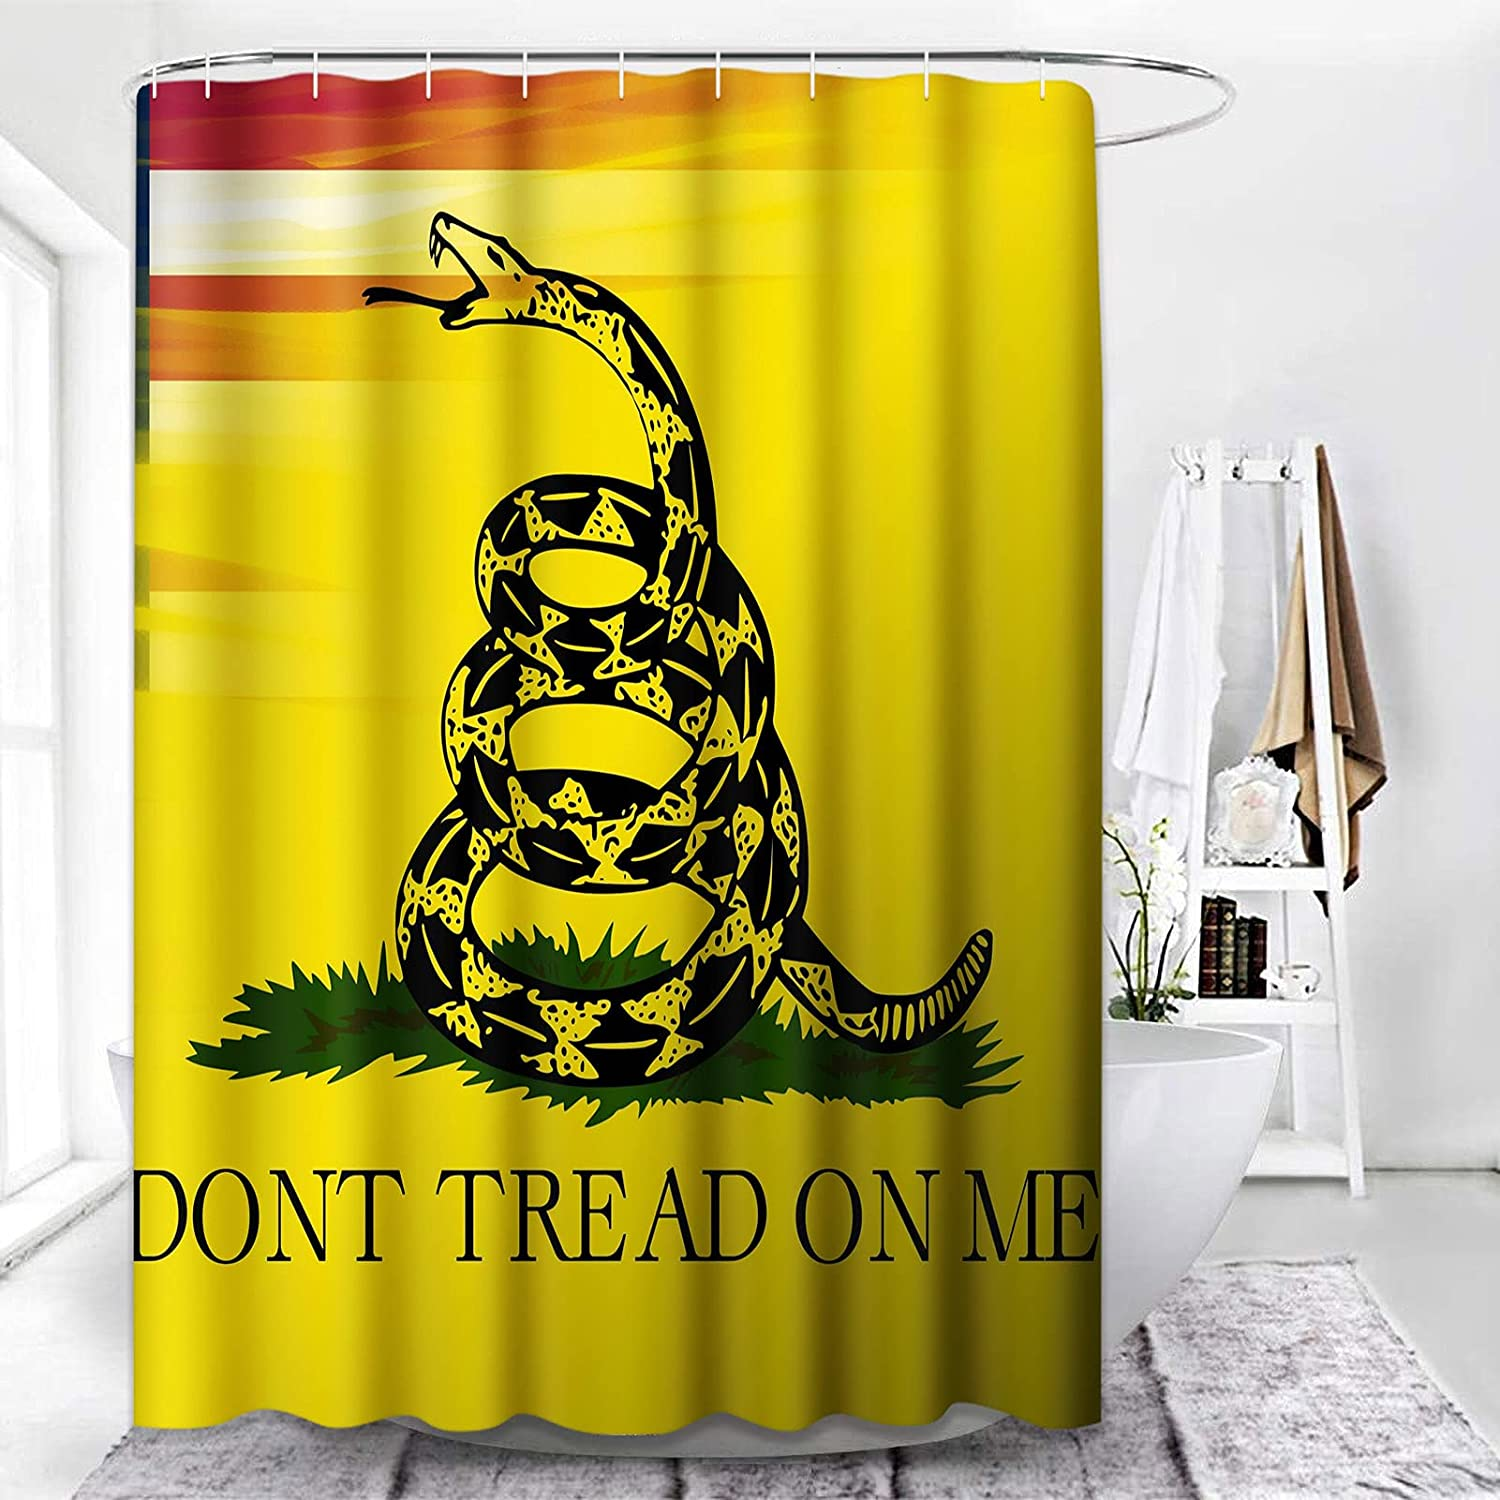 ArtSocket Shower Curtain Dont Lowest price challenge Tread Max 50% OFF Me On Authentic Snake Scale